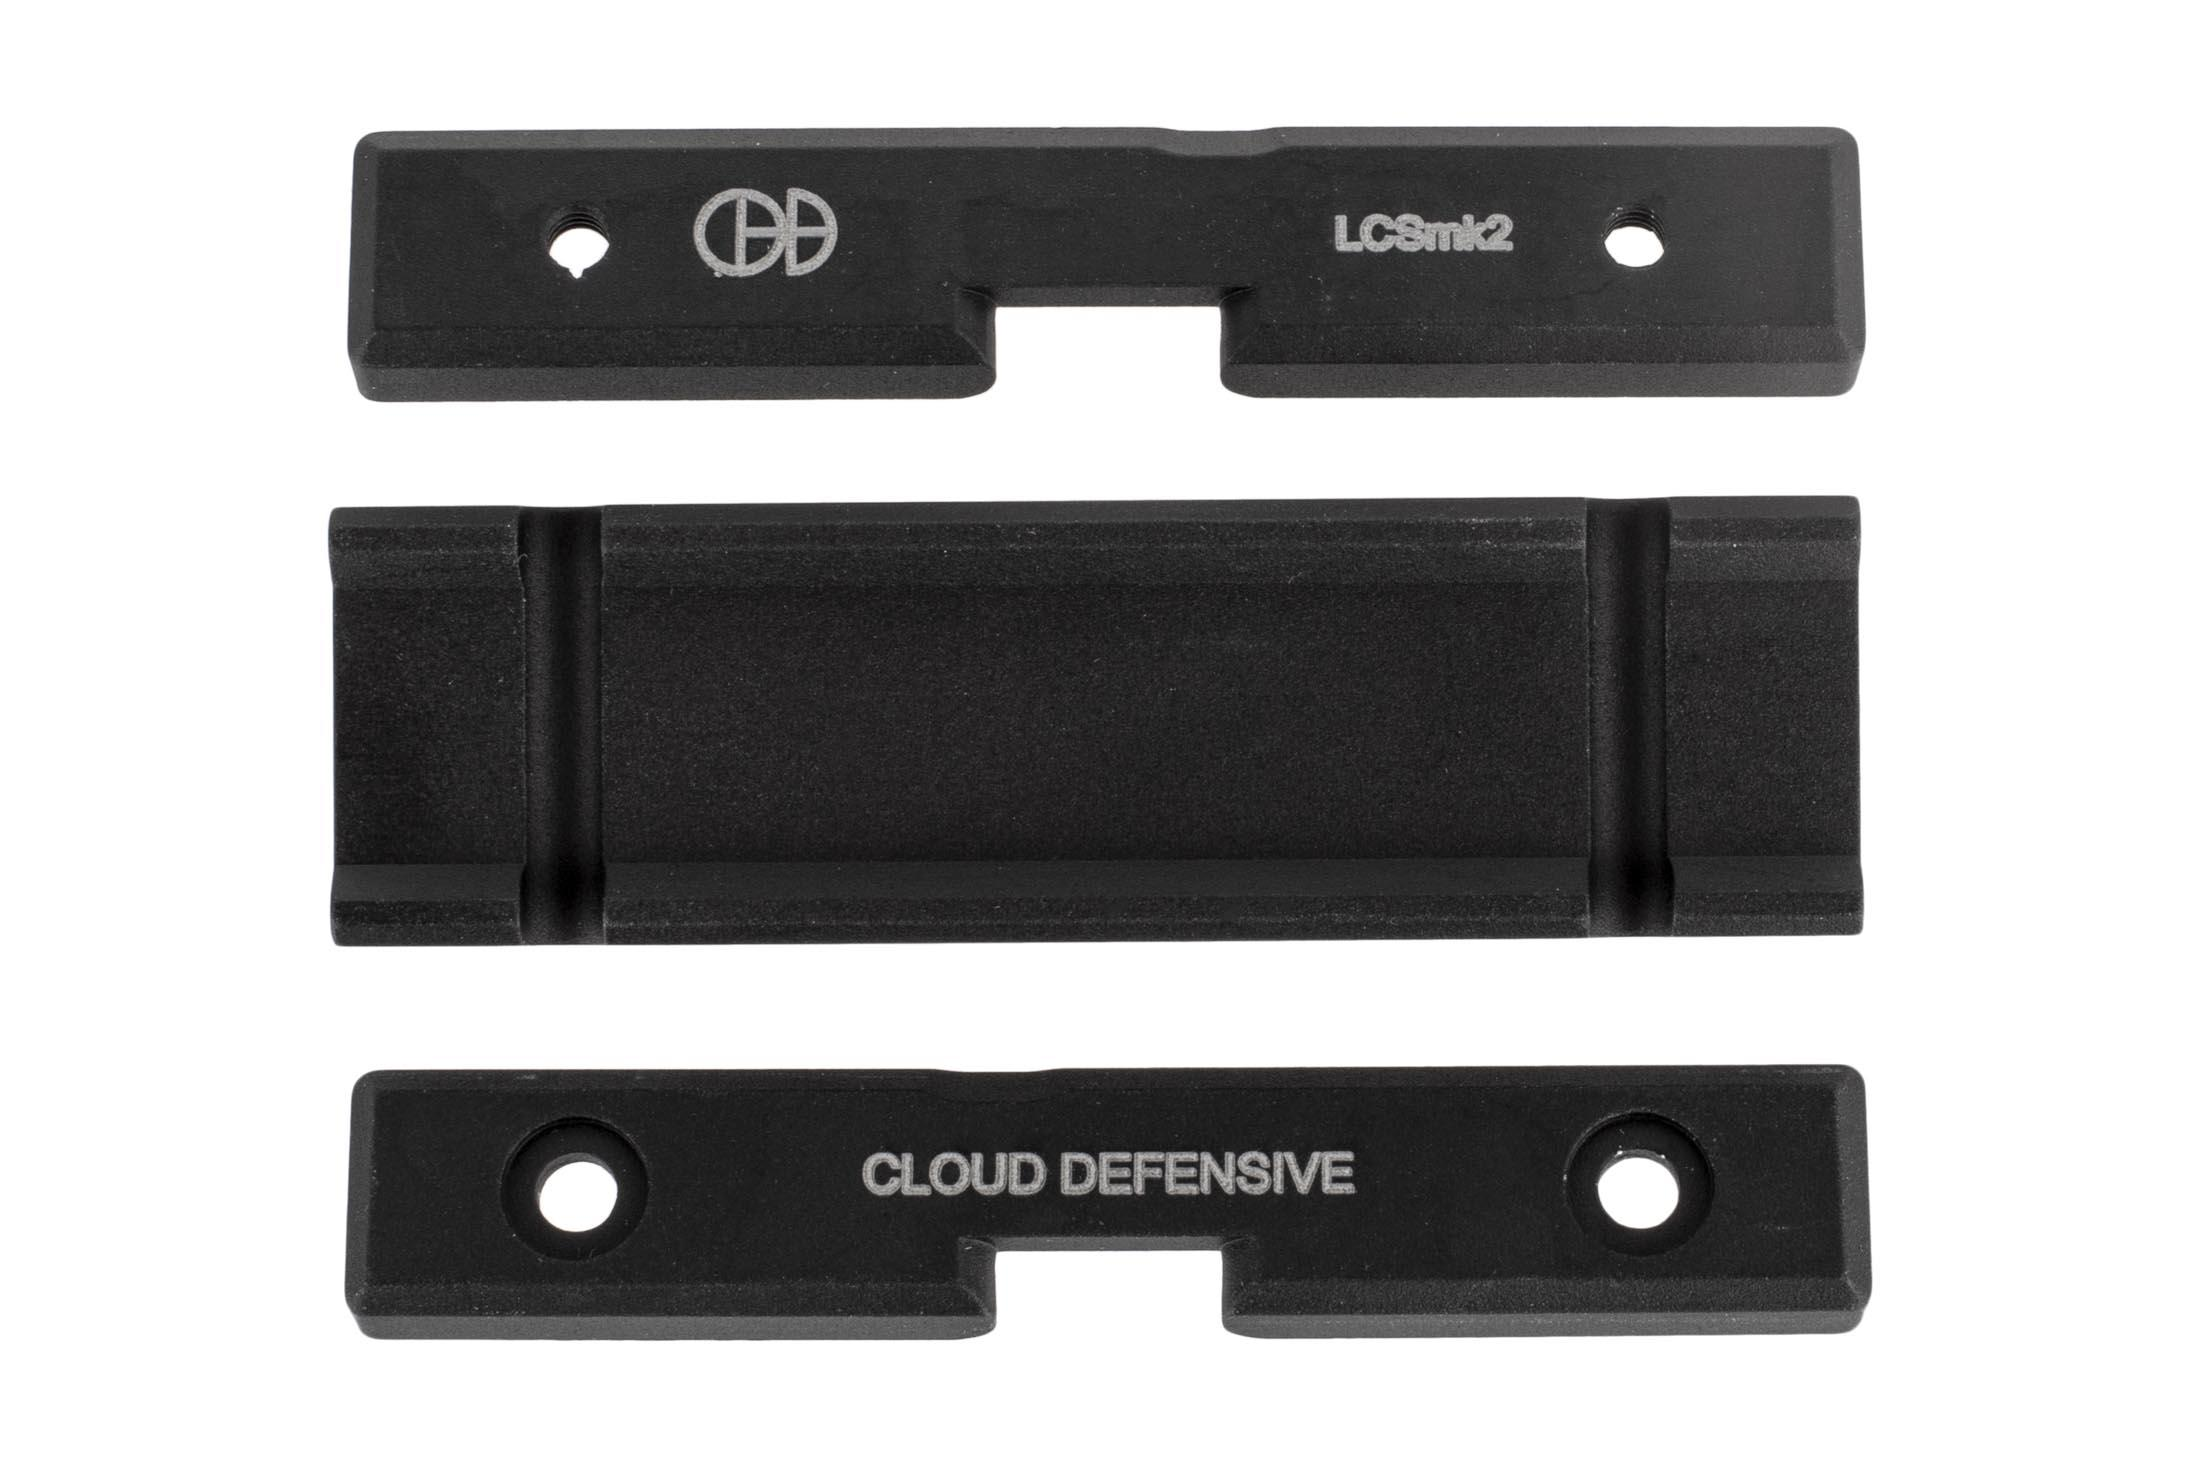 Cloud Defensive LCS Streamlight Pro-Tac Tape Switch Picatinny Mount with durable aluminum machining and black anodized finish.